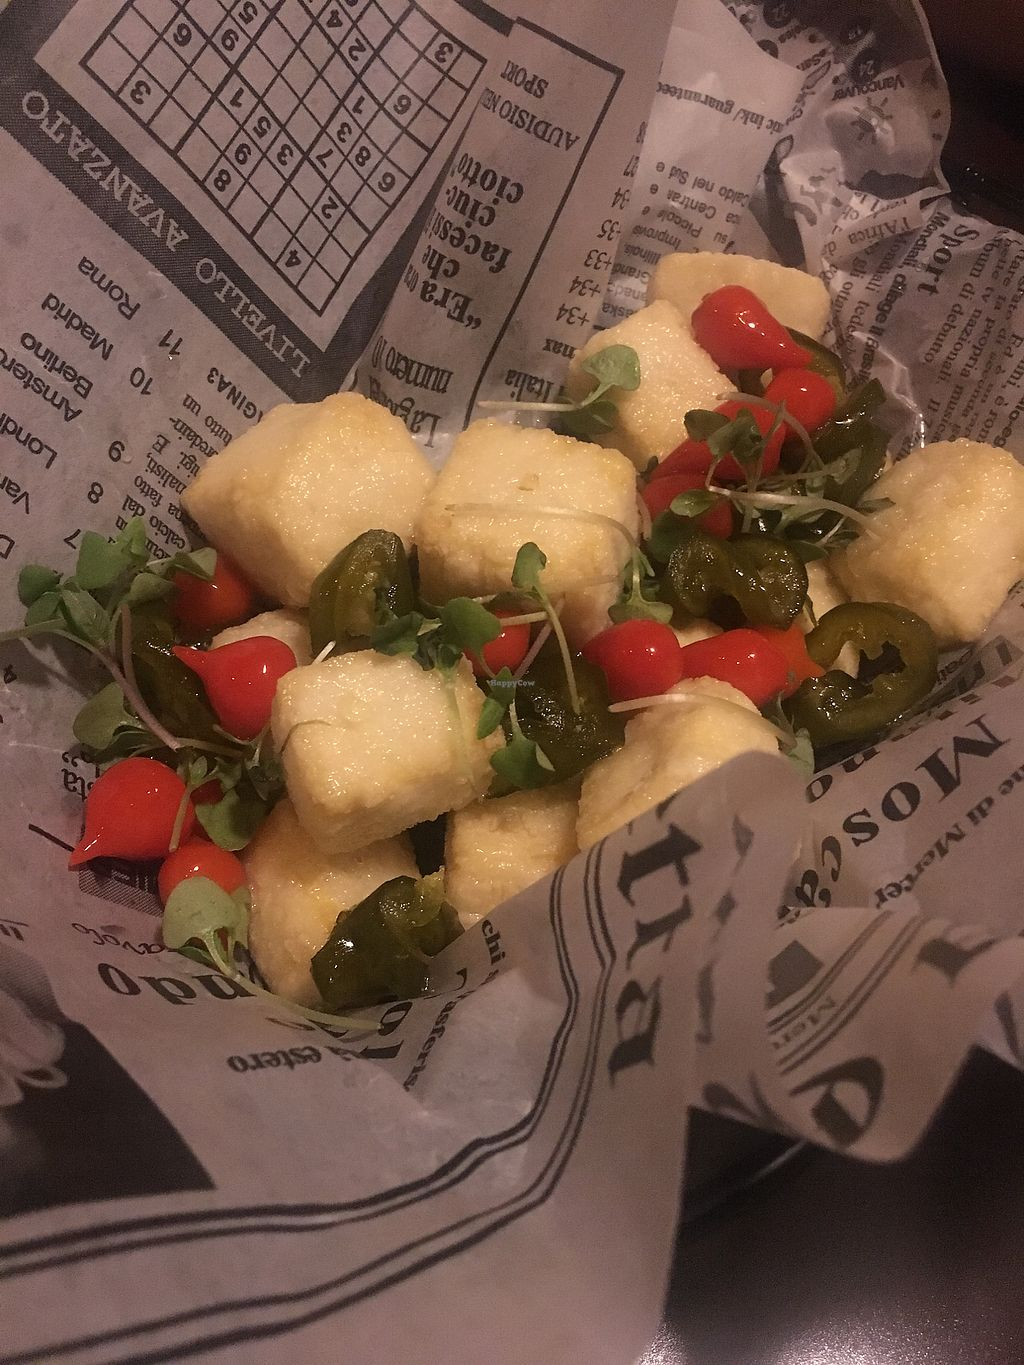 """Photo of Tony and Nick's Italian Kitchen  by <a href=""""/members/profile/thebin41"""">thebin41</a> <br/>Crispy Tofu <br/> March 10, 2018  - <a href='/contact/abuse/image/89387/368658'>Report</a>"""